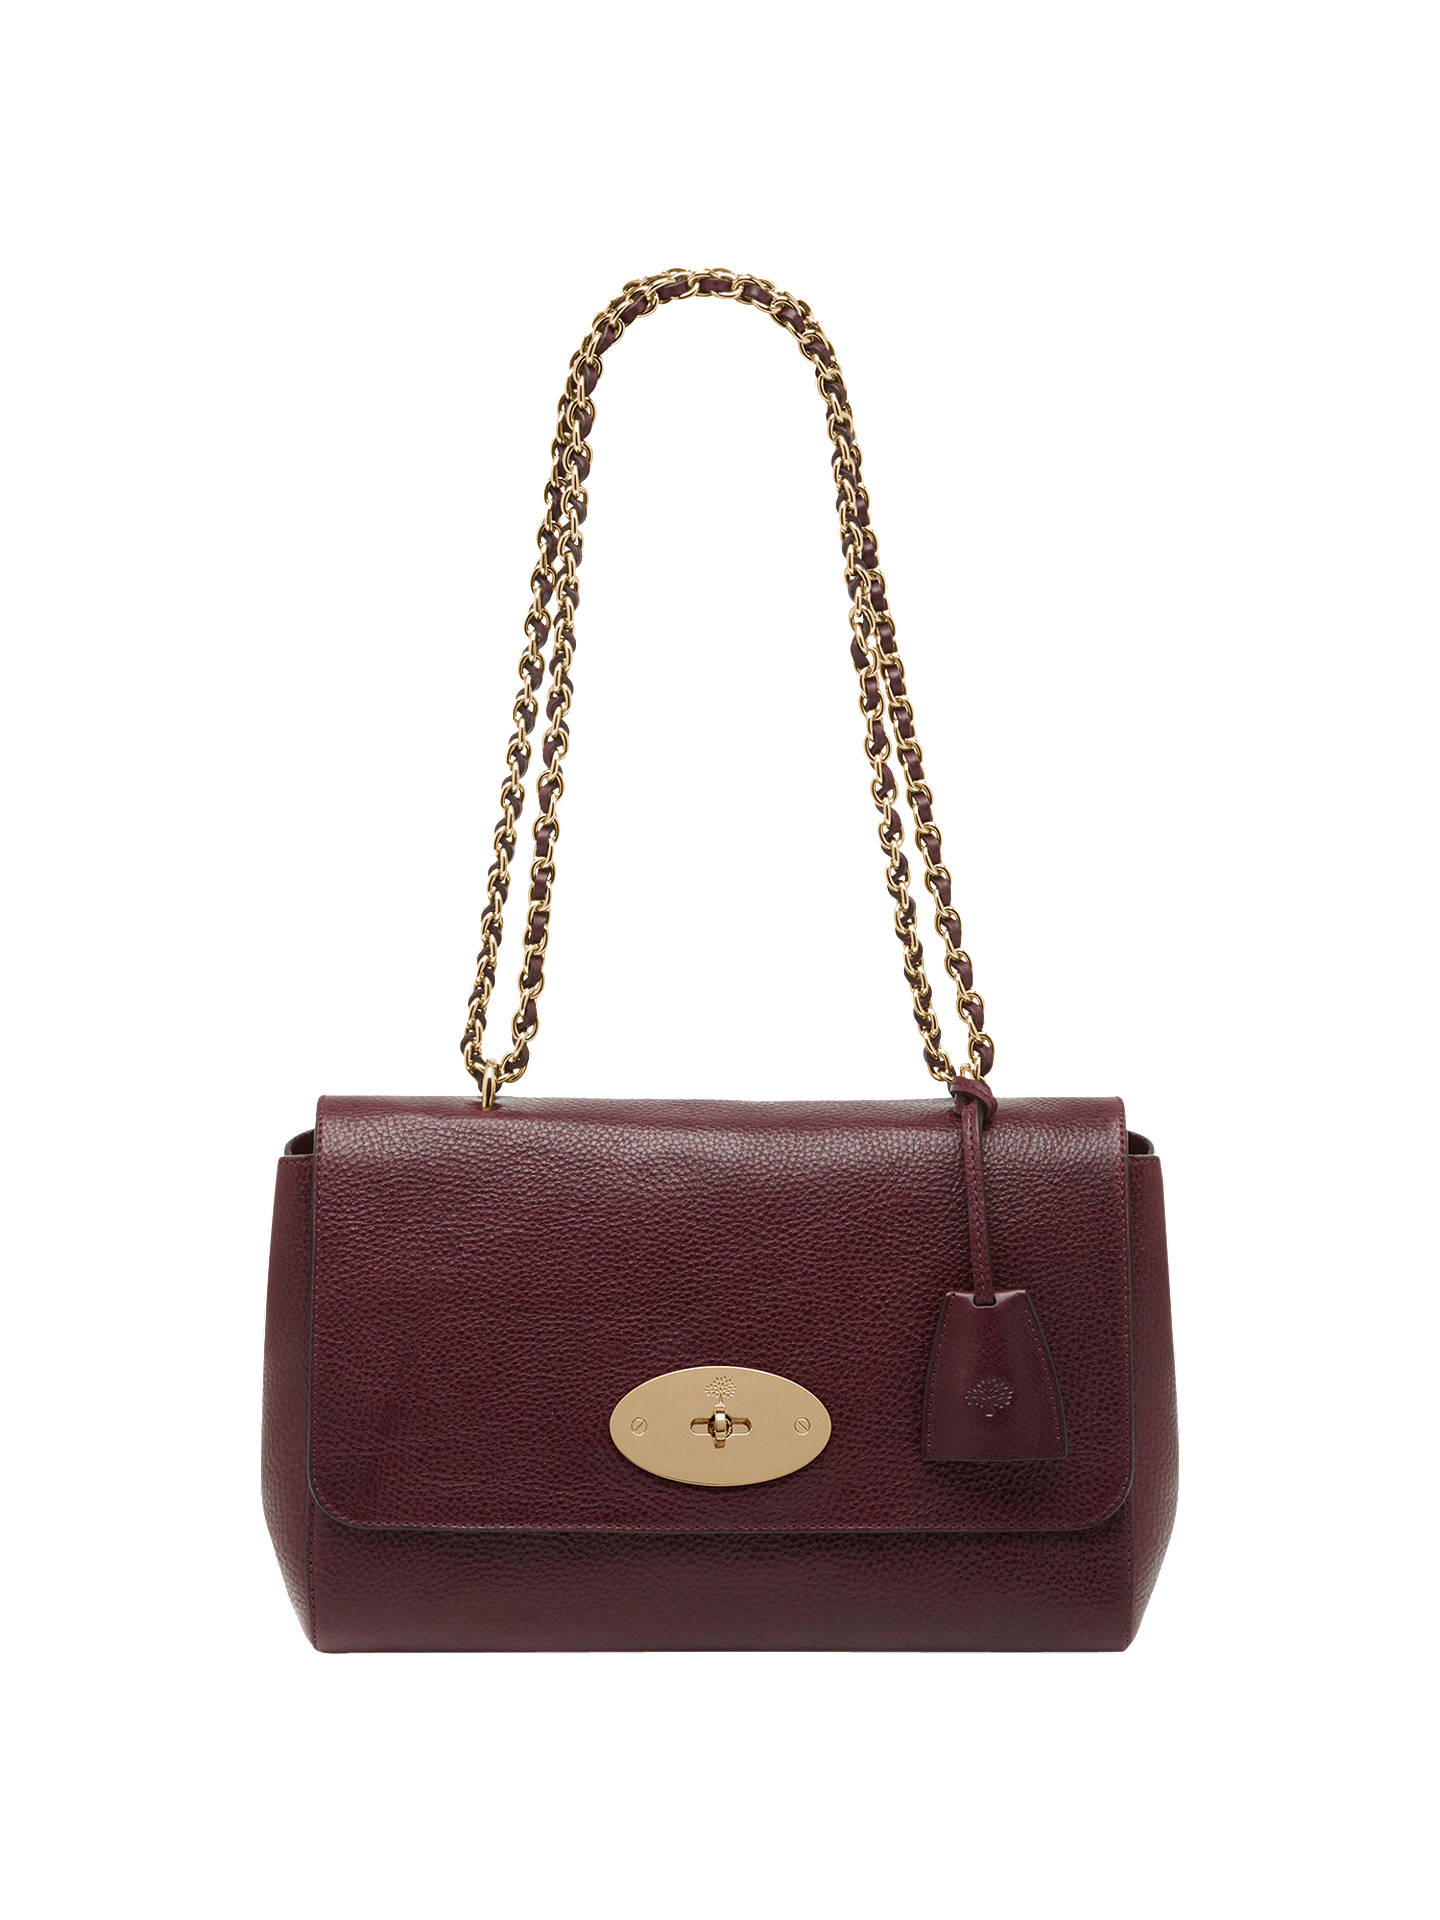 528a7a8c83fa Mulberry Medium Lily Leather Shoulder Bag at John Lewis   Partners